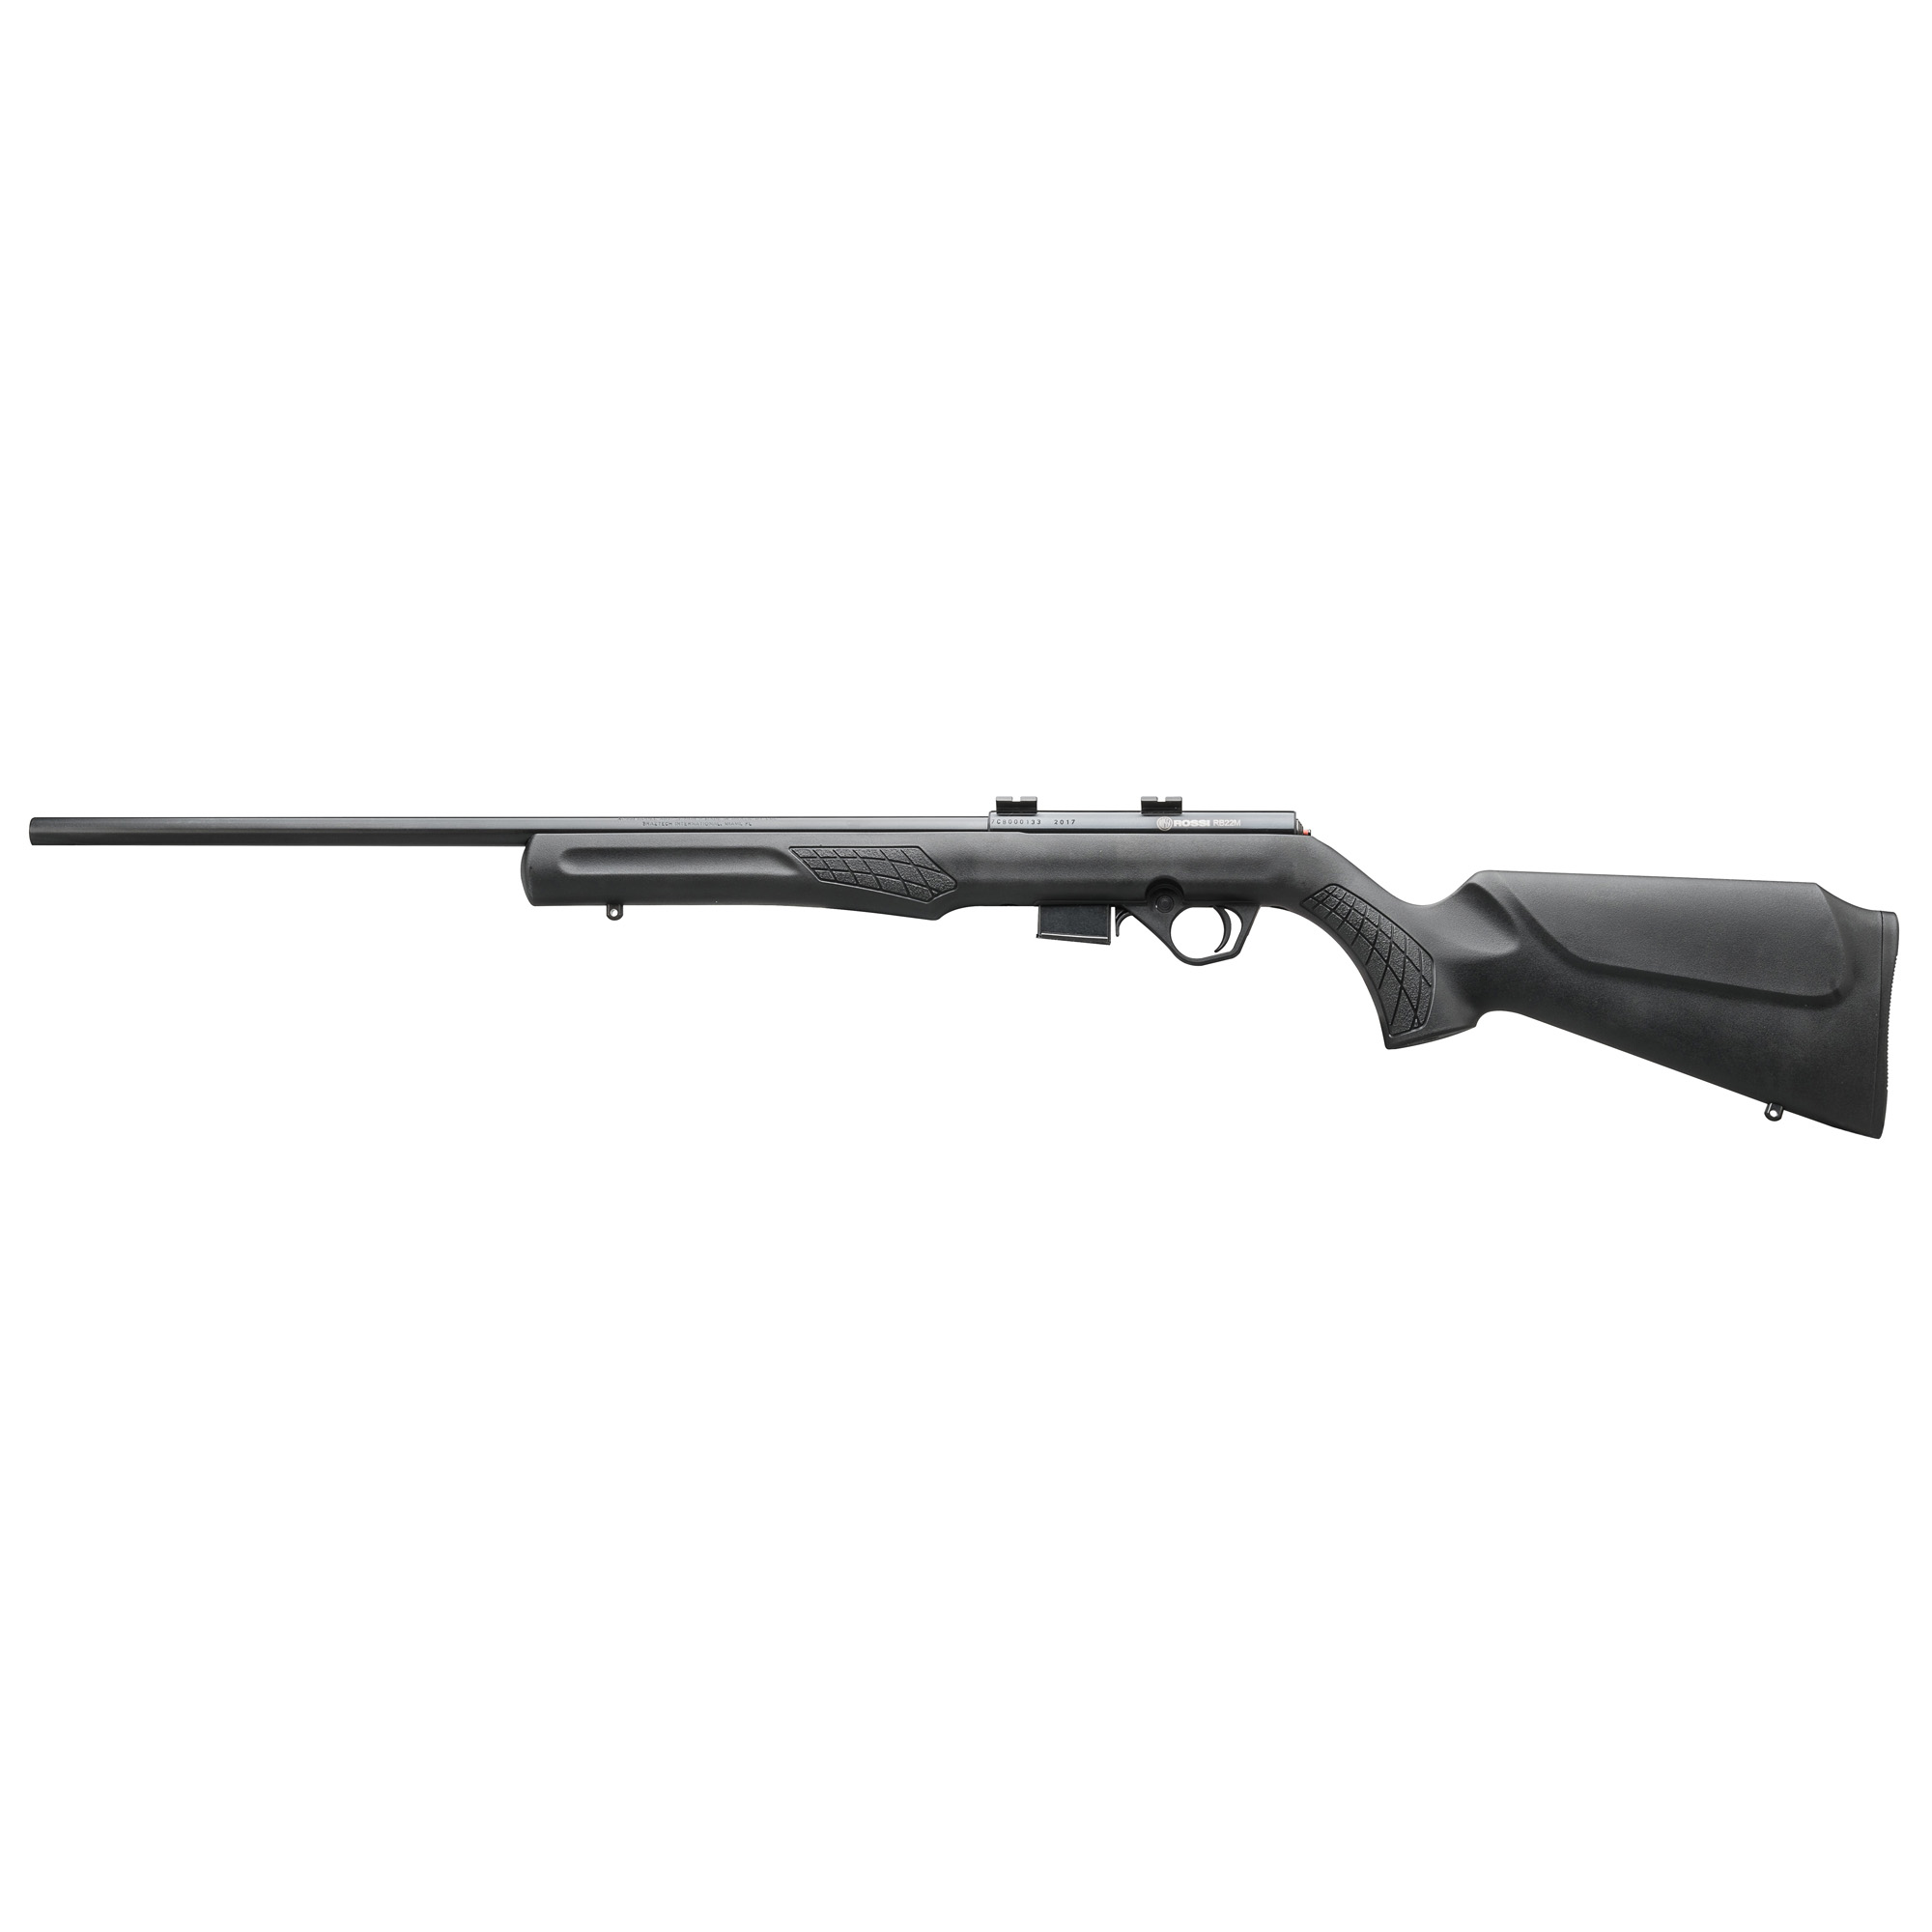 """The Rossi(R) RB22M is a reliable and accurate bolt action rimfire rifle. The textured synthetic Monte Carlo stock is perfectly mated to a 21"""" free-float barrel for outstanding balance and feel. Offered in .22 WMR the RB22M features Weaver(R) style scope mounts"""" and a 5 round detachable magazine."""